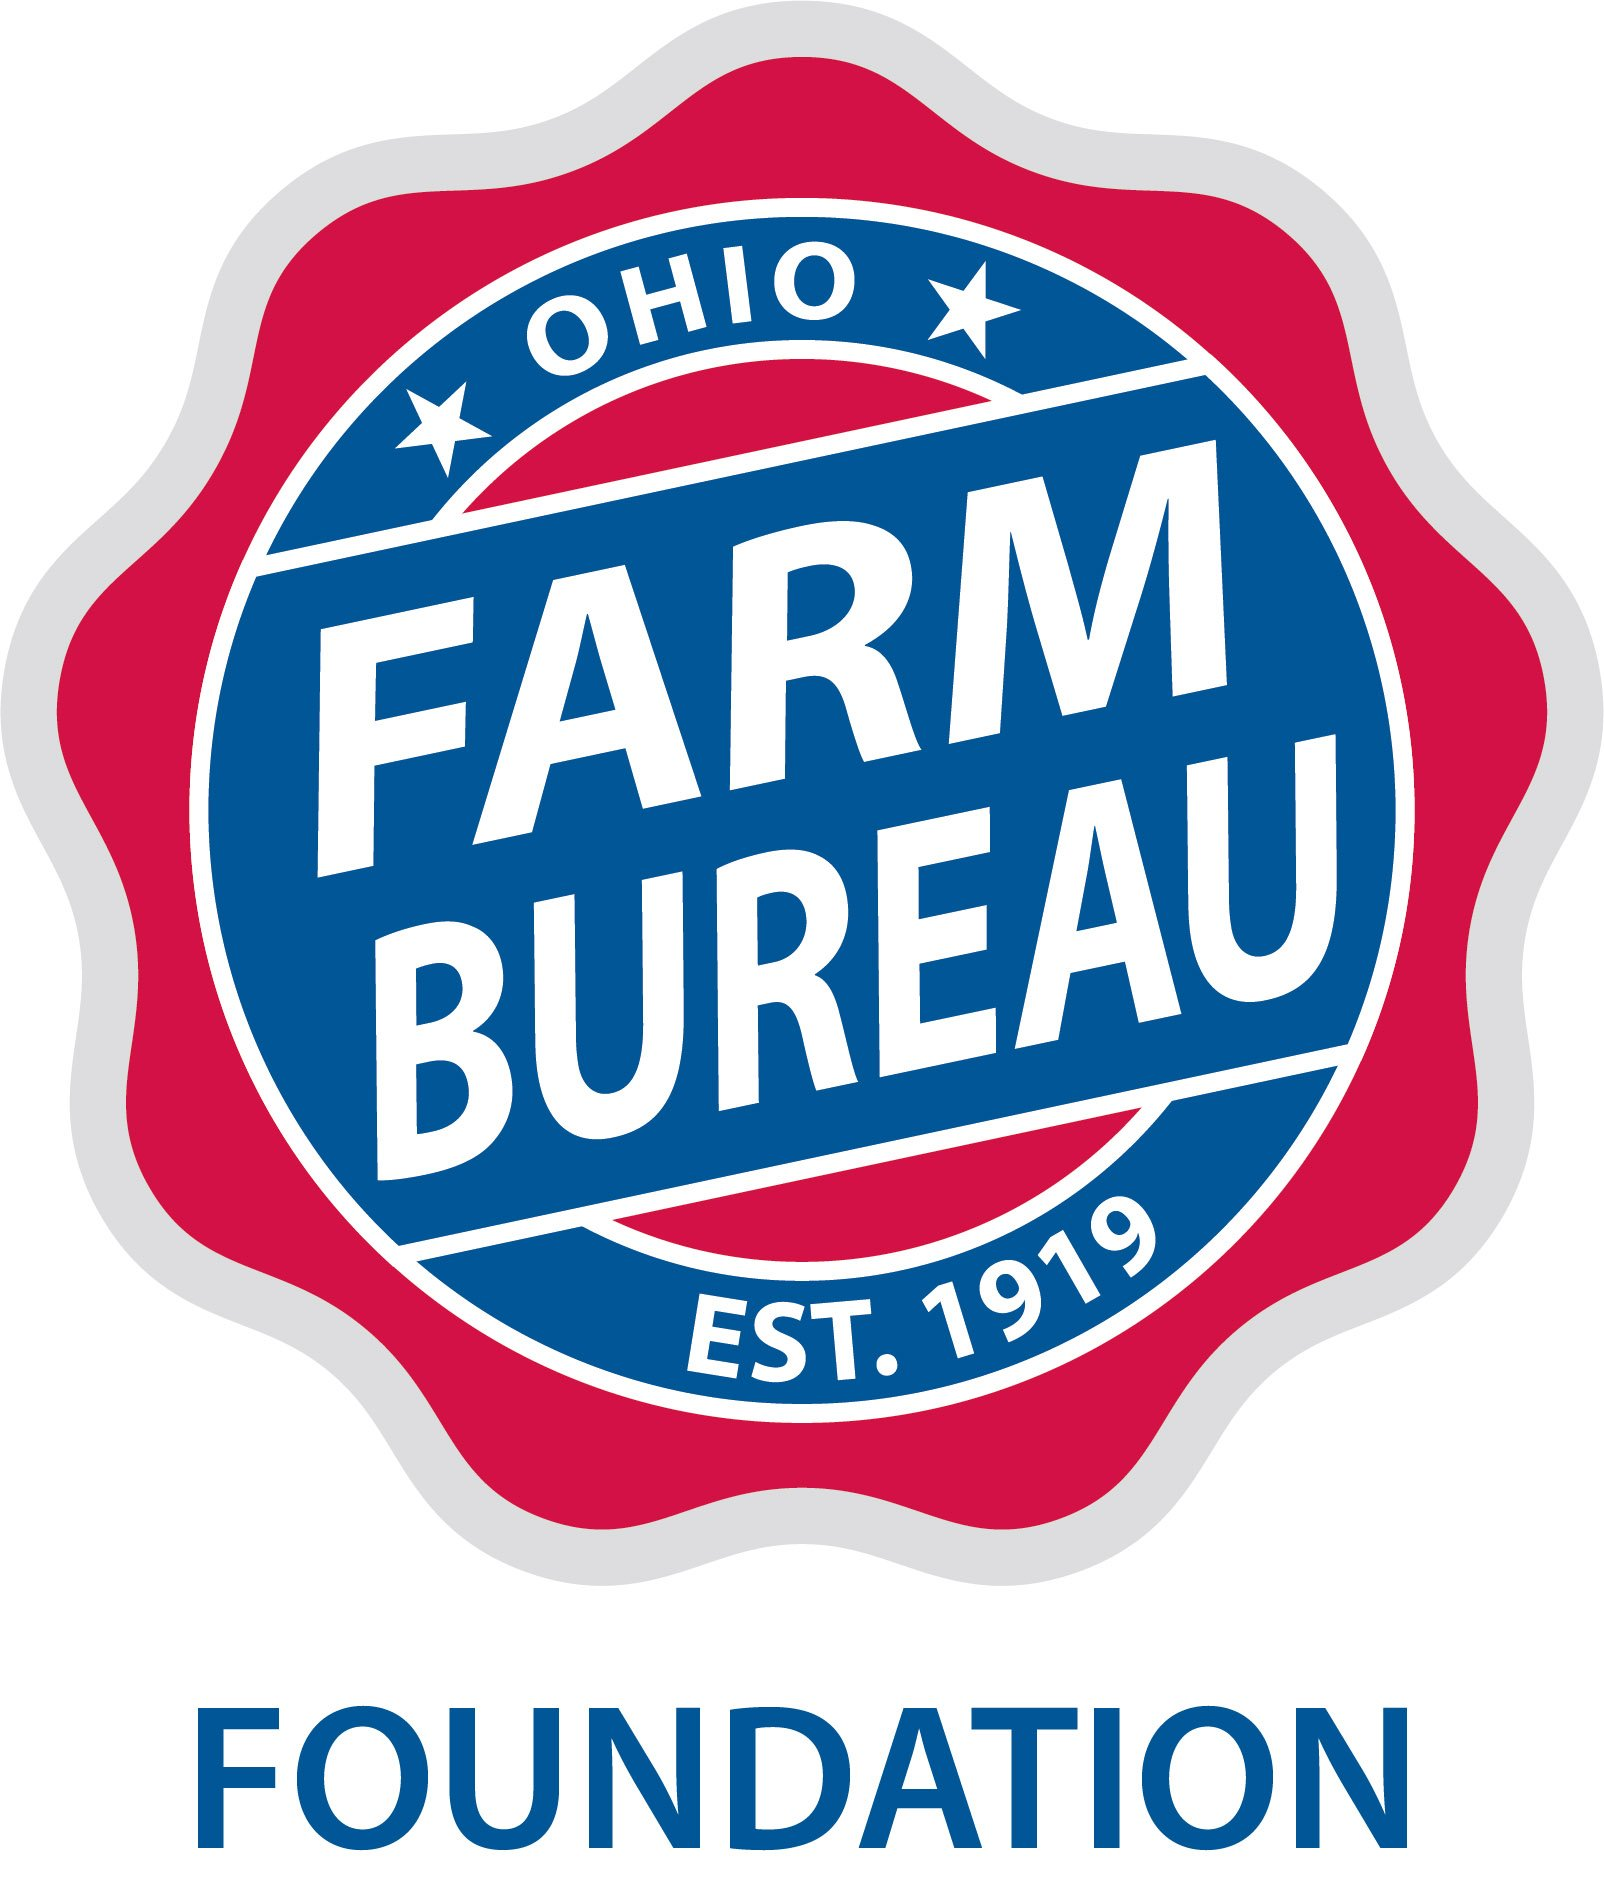 Ohio Farm Bureau Foundation logo